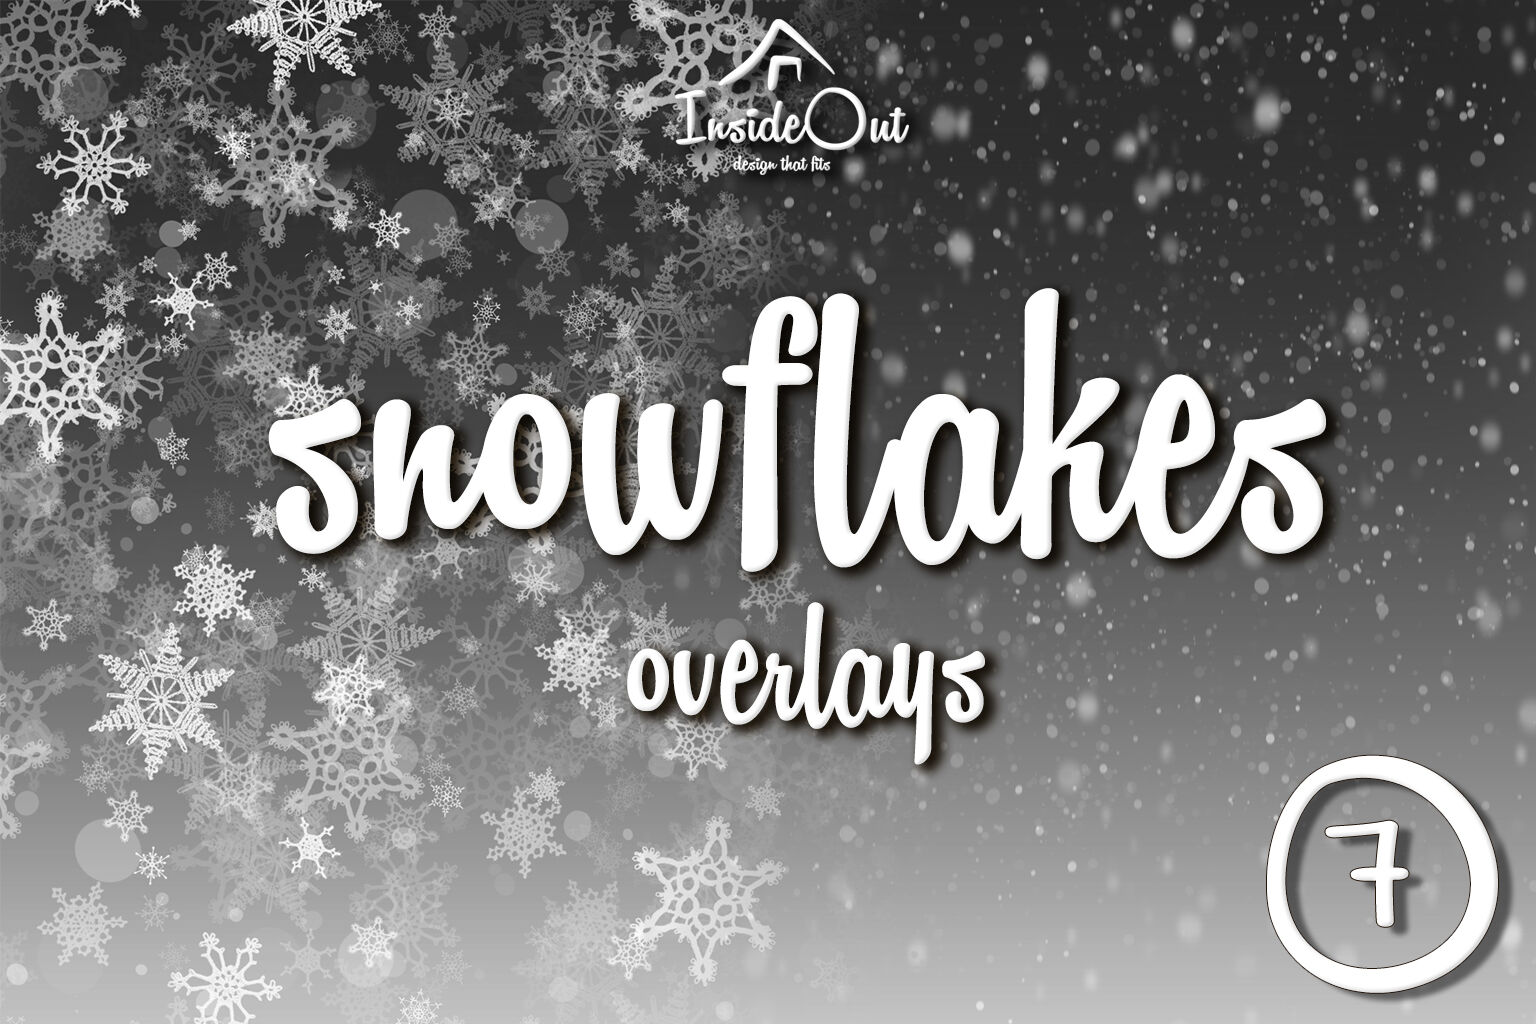 Christmas overlay clipart vector freeuse library Falling Snow Overlay Snowflake Clipart. Photoshop Christmas ... vector freeuse library